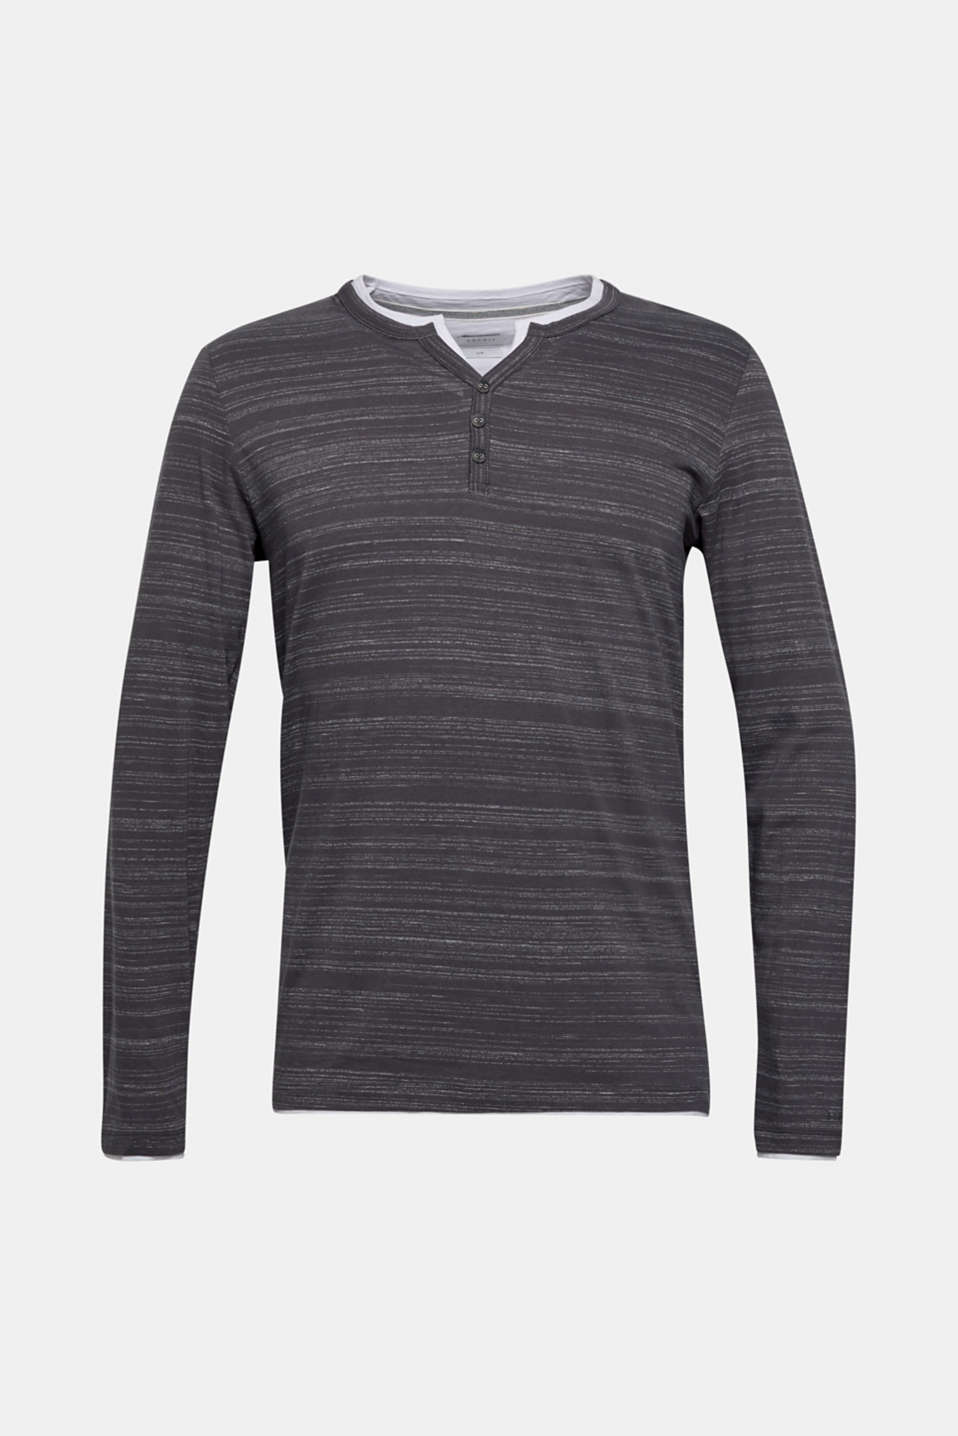 A fashion basic and must-have for every wardrobe: Henley top with fine, textured stripes.